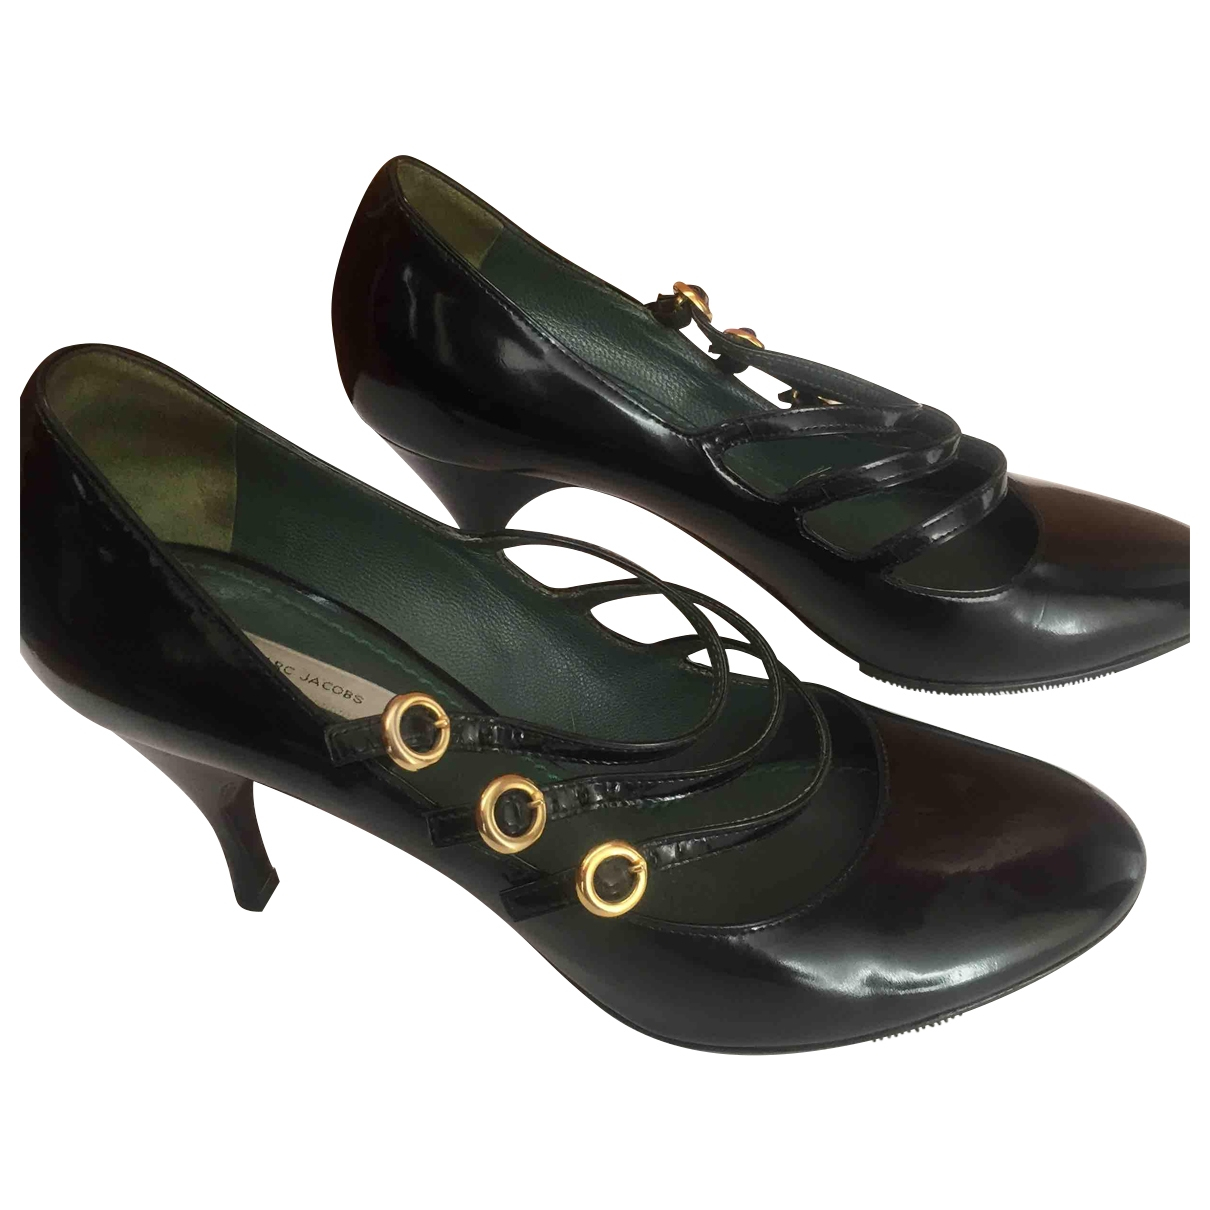 Marc Jacobs \N Black Patent leather Heels for Women 38 EU